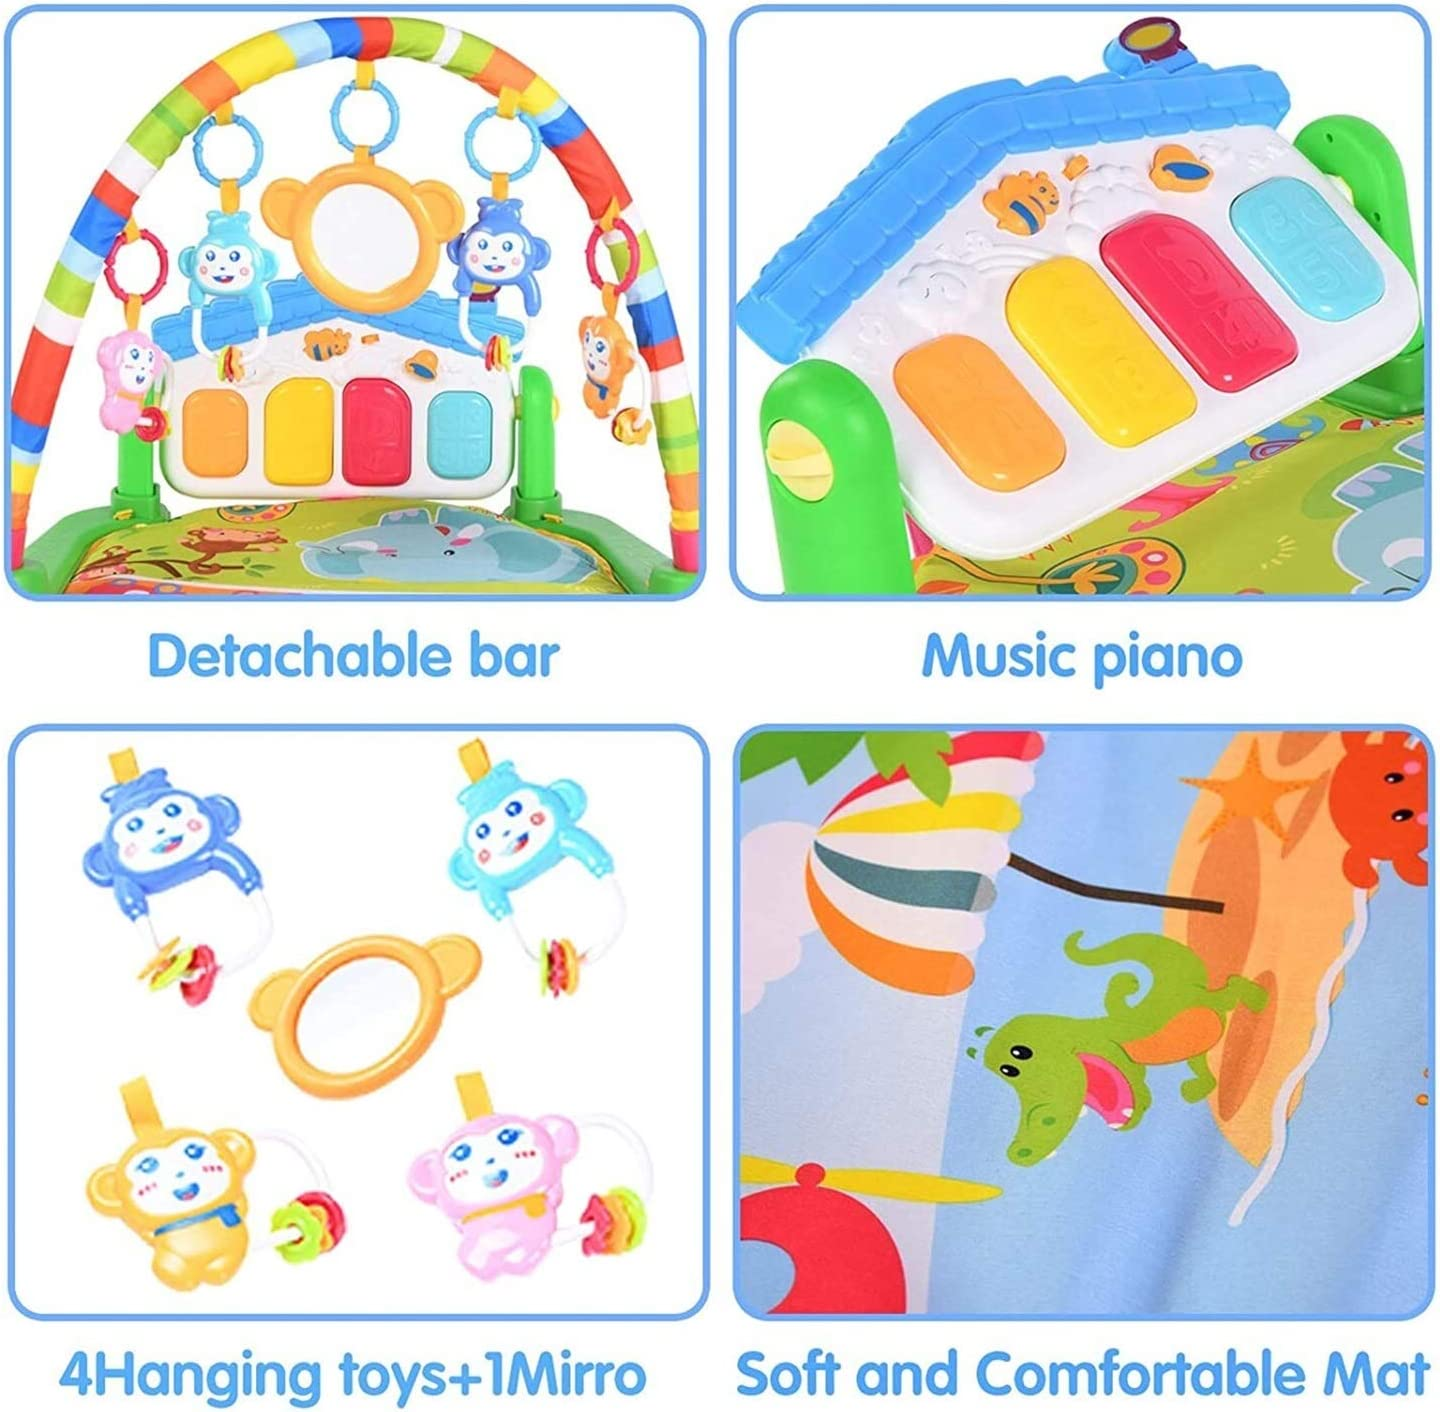 Jungle Gym Mat for Infants,Early Education Toys for Tummy Time Boys and Girls Aged 0 to 24 Months Color : Blue-Thick Mat Baby Gym Play Mats,Kick and Play Piano Gym with Music and Lights